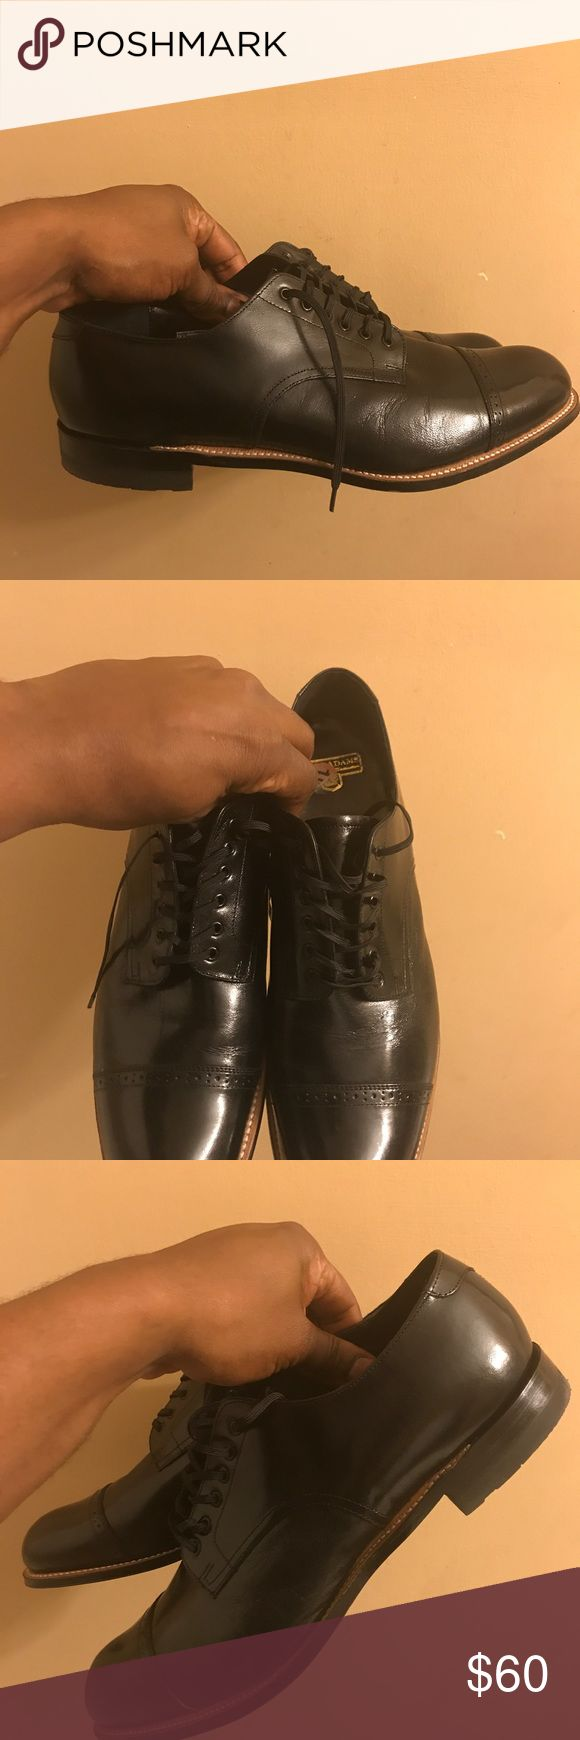 STACY ADAMS SHOES These are a brand new pair of Stacy Adams shoes worn for 30 minutes.!!!!! Size 13 Stacy Adams Shoes Oxfords & Derbys